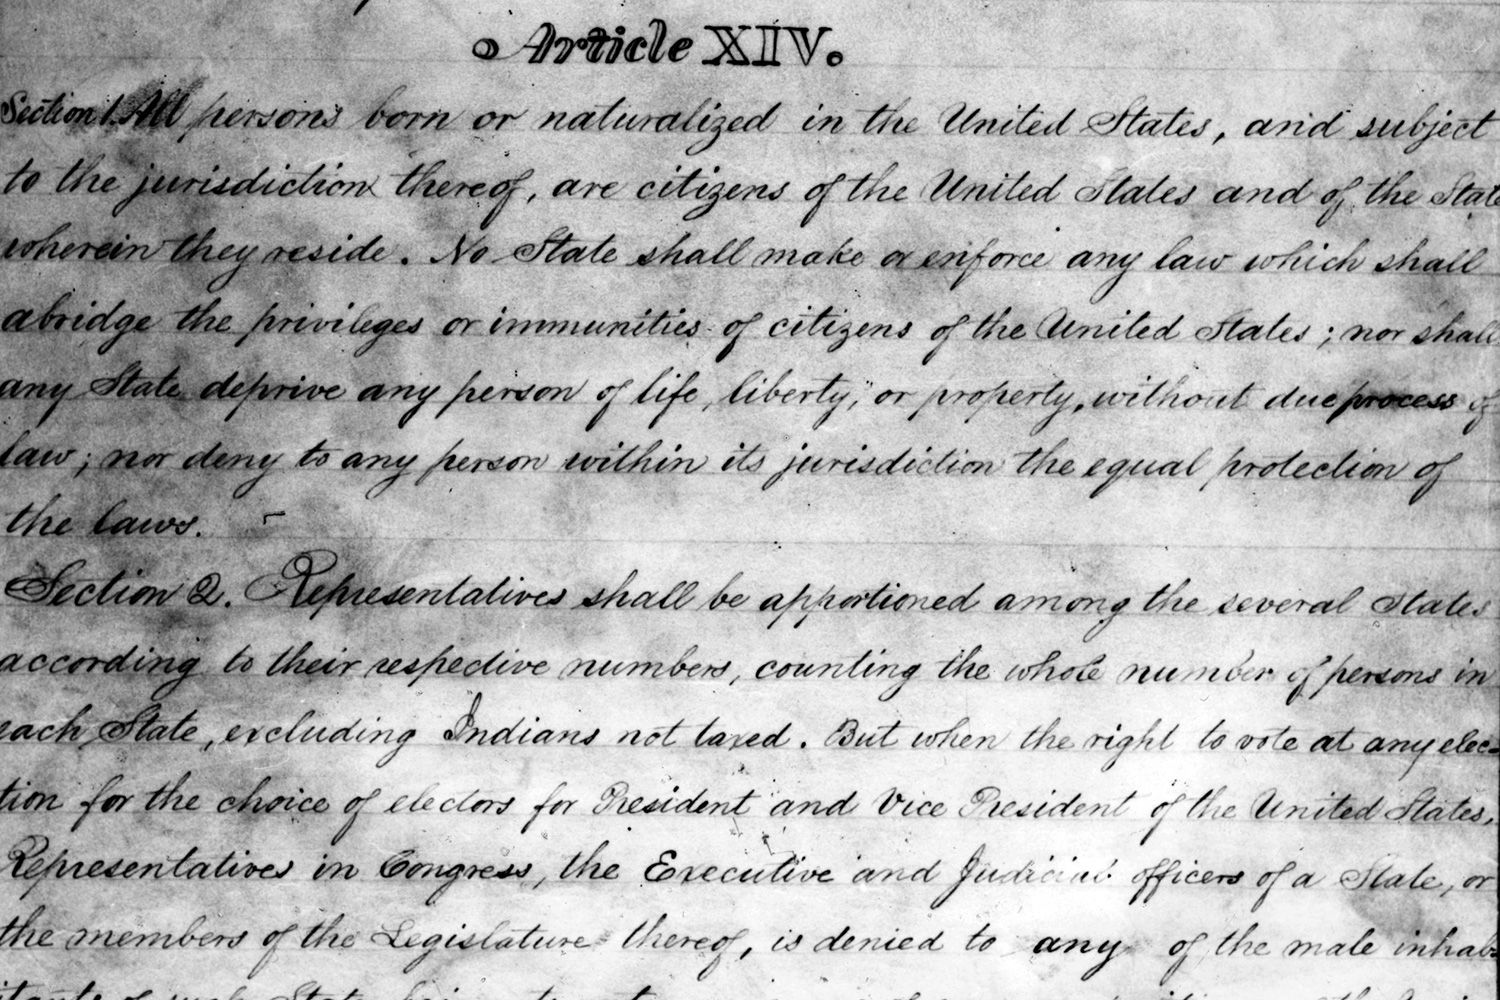 essay on the 14th amendment The 14th amendment provided the backbone for the civil rights movement the civil rights movement was able to make major gains because it was able to make an argument for civil rights with the constitution on its side.